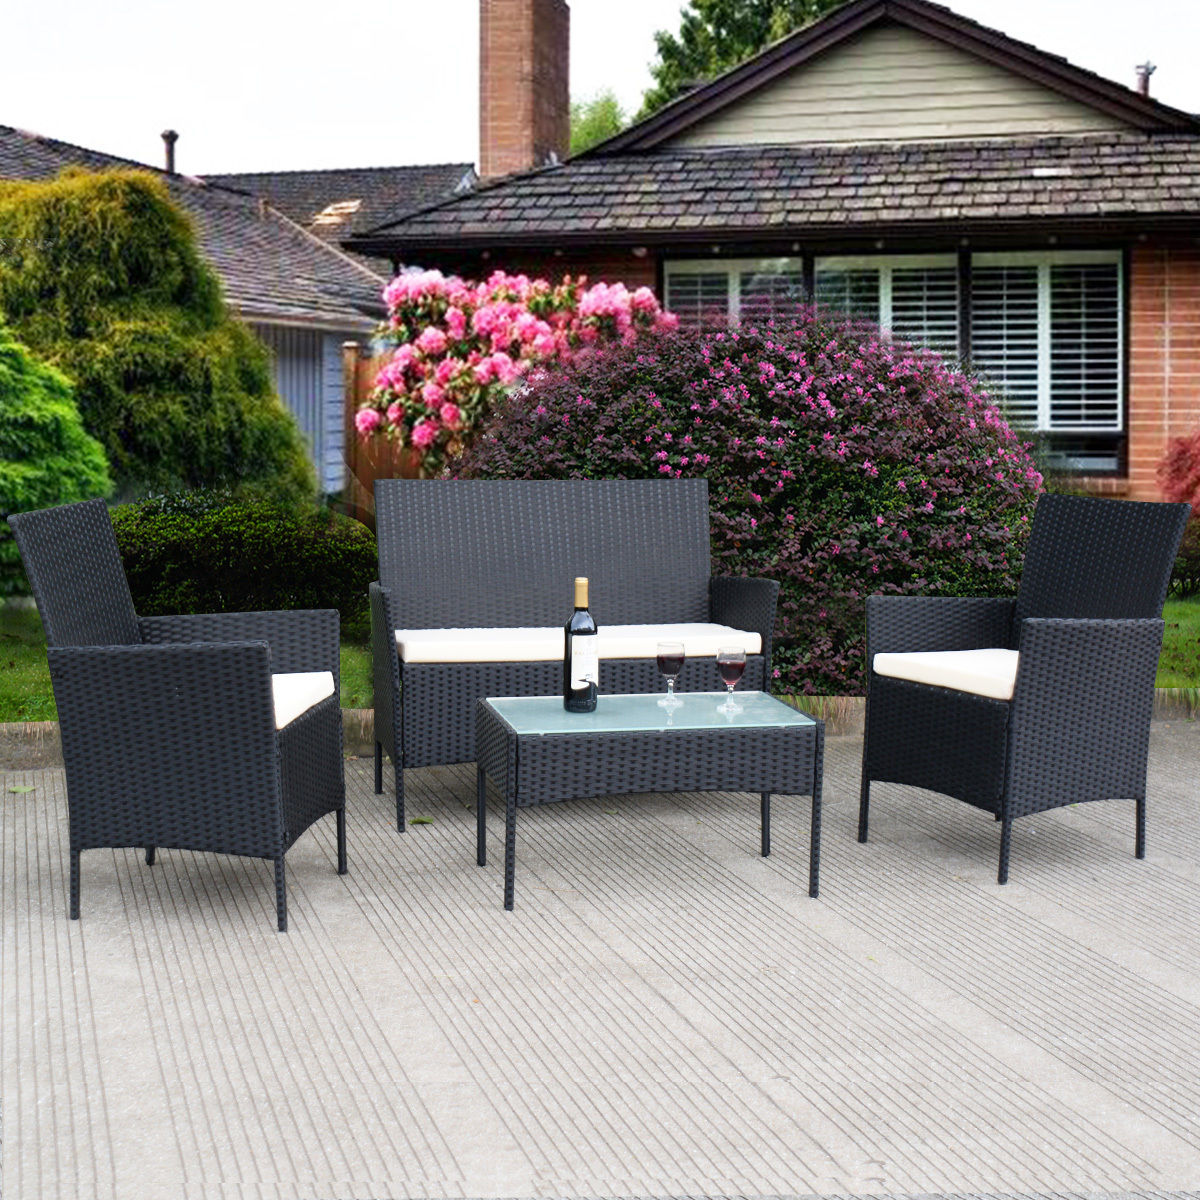 Click here to buy Costway 4 PC Outdoor Rattan Furniture Set Loveseat Sofa Cushioned Patio Garden Steel by Costway.